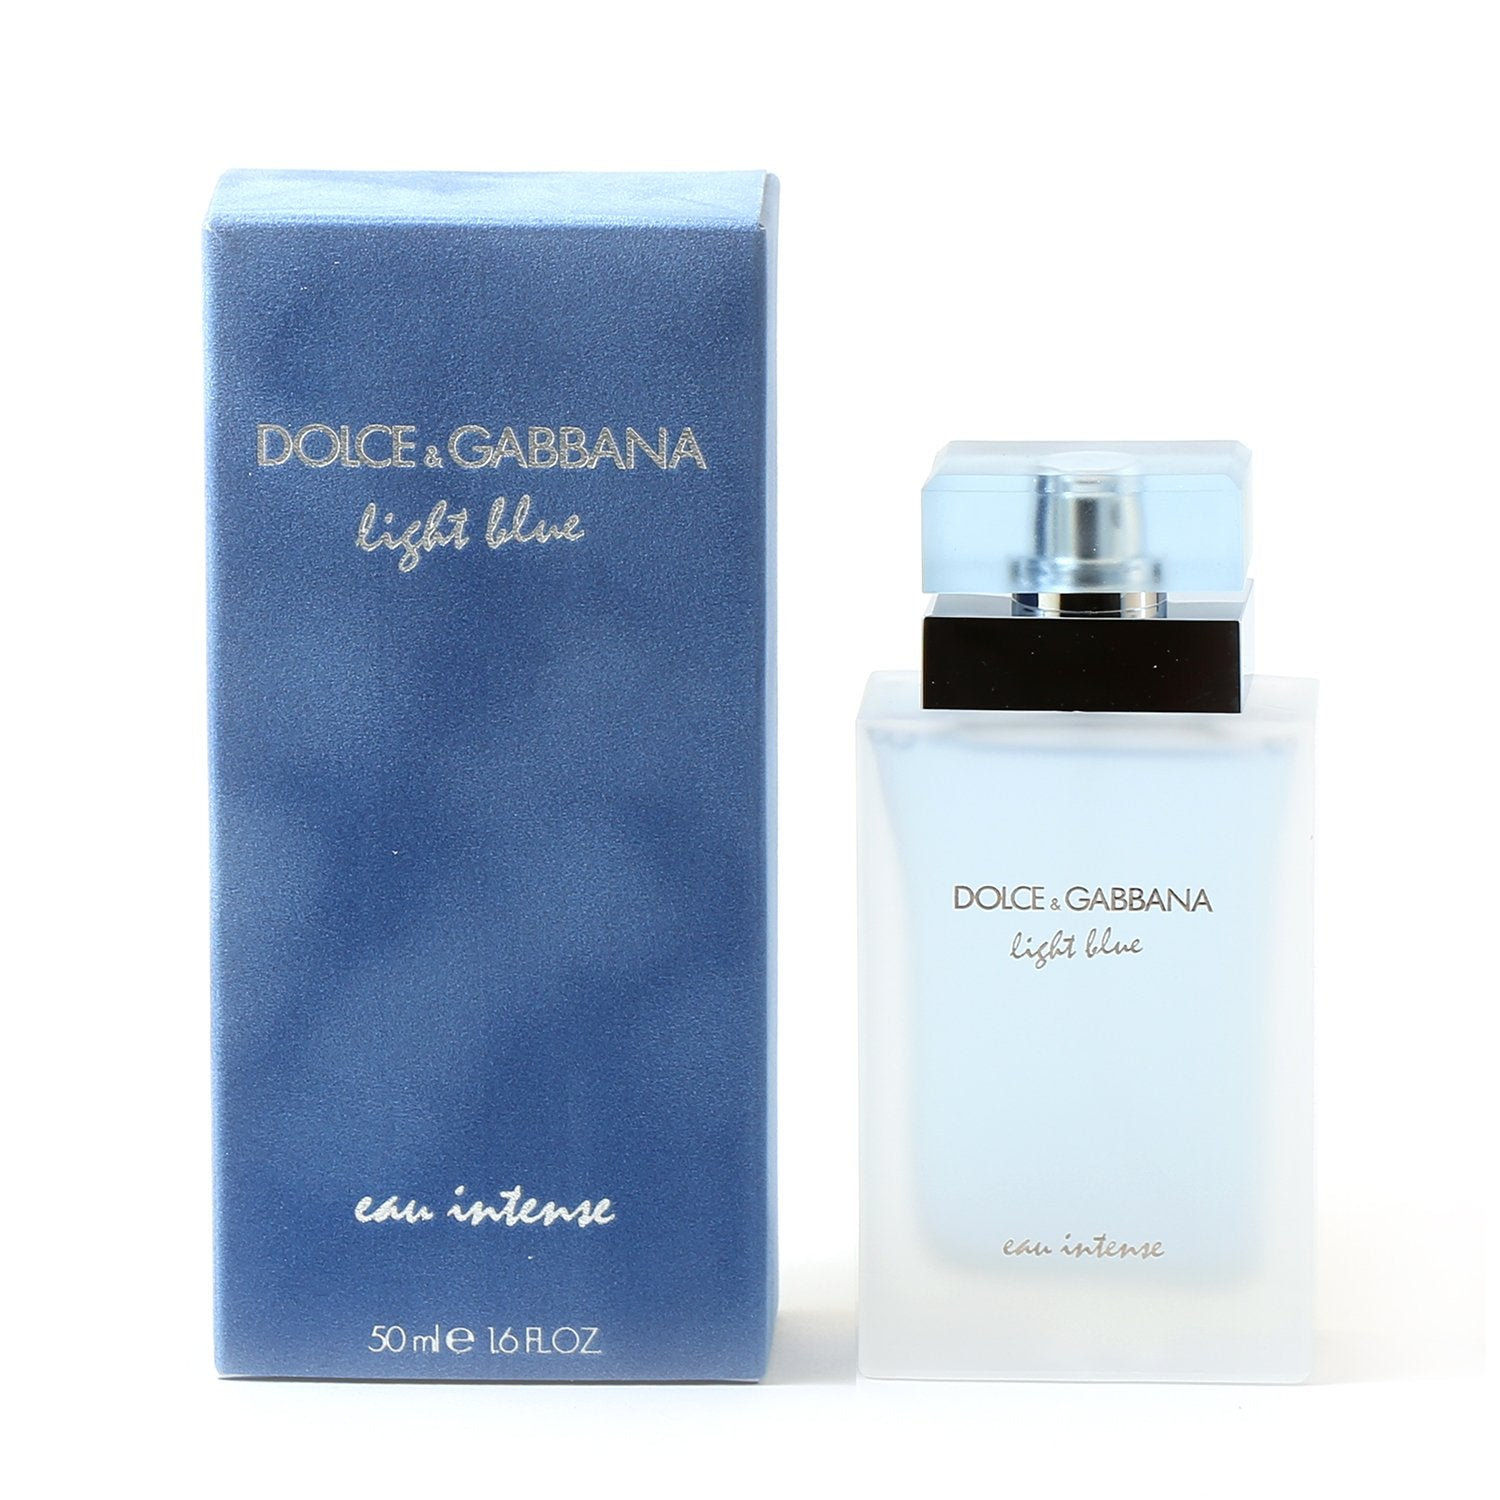 Perfume - DOLCE   GABBANA LIGHT BLUE EAU INTENSE FOR WOMEN - EAU DE PARFUM  SPRAY 28d52b8754